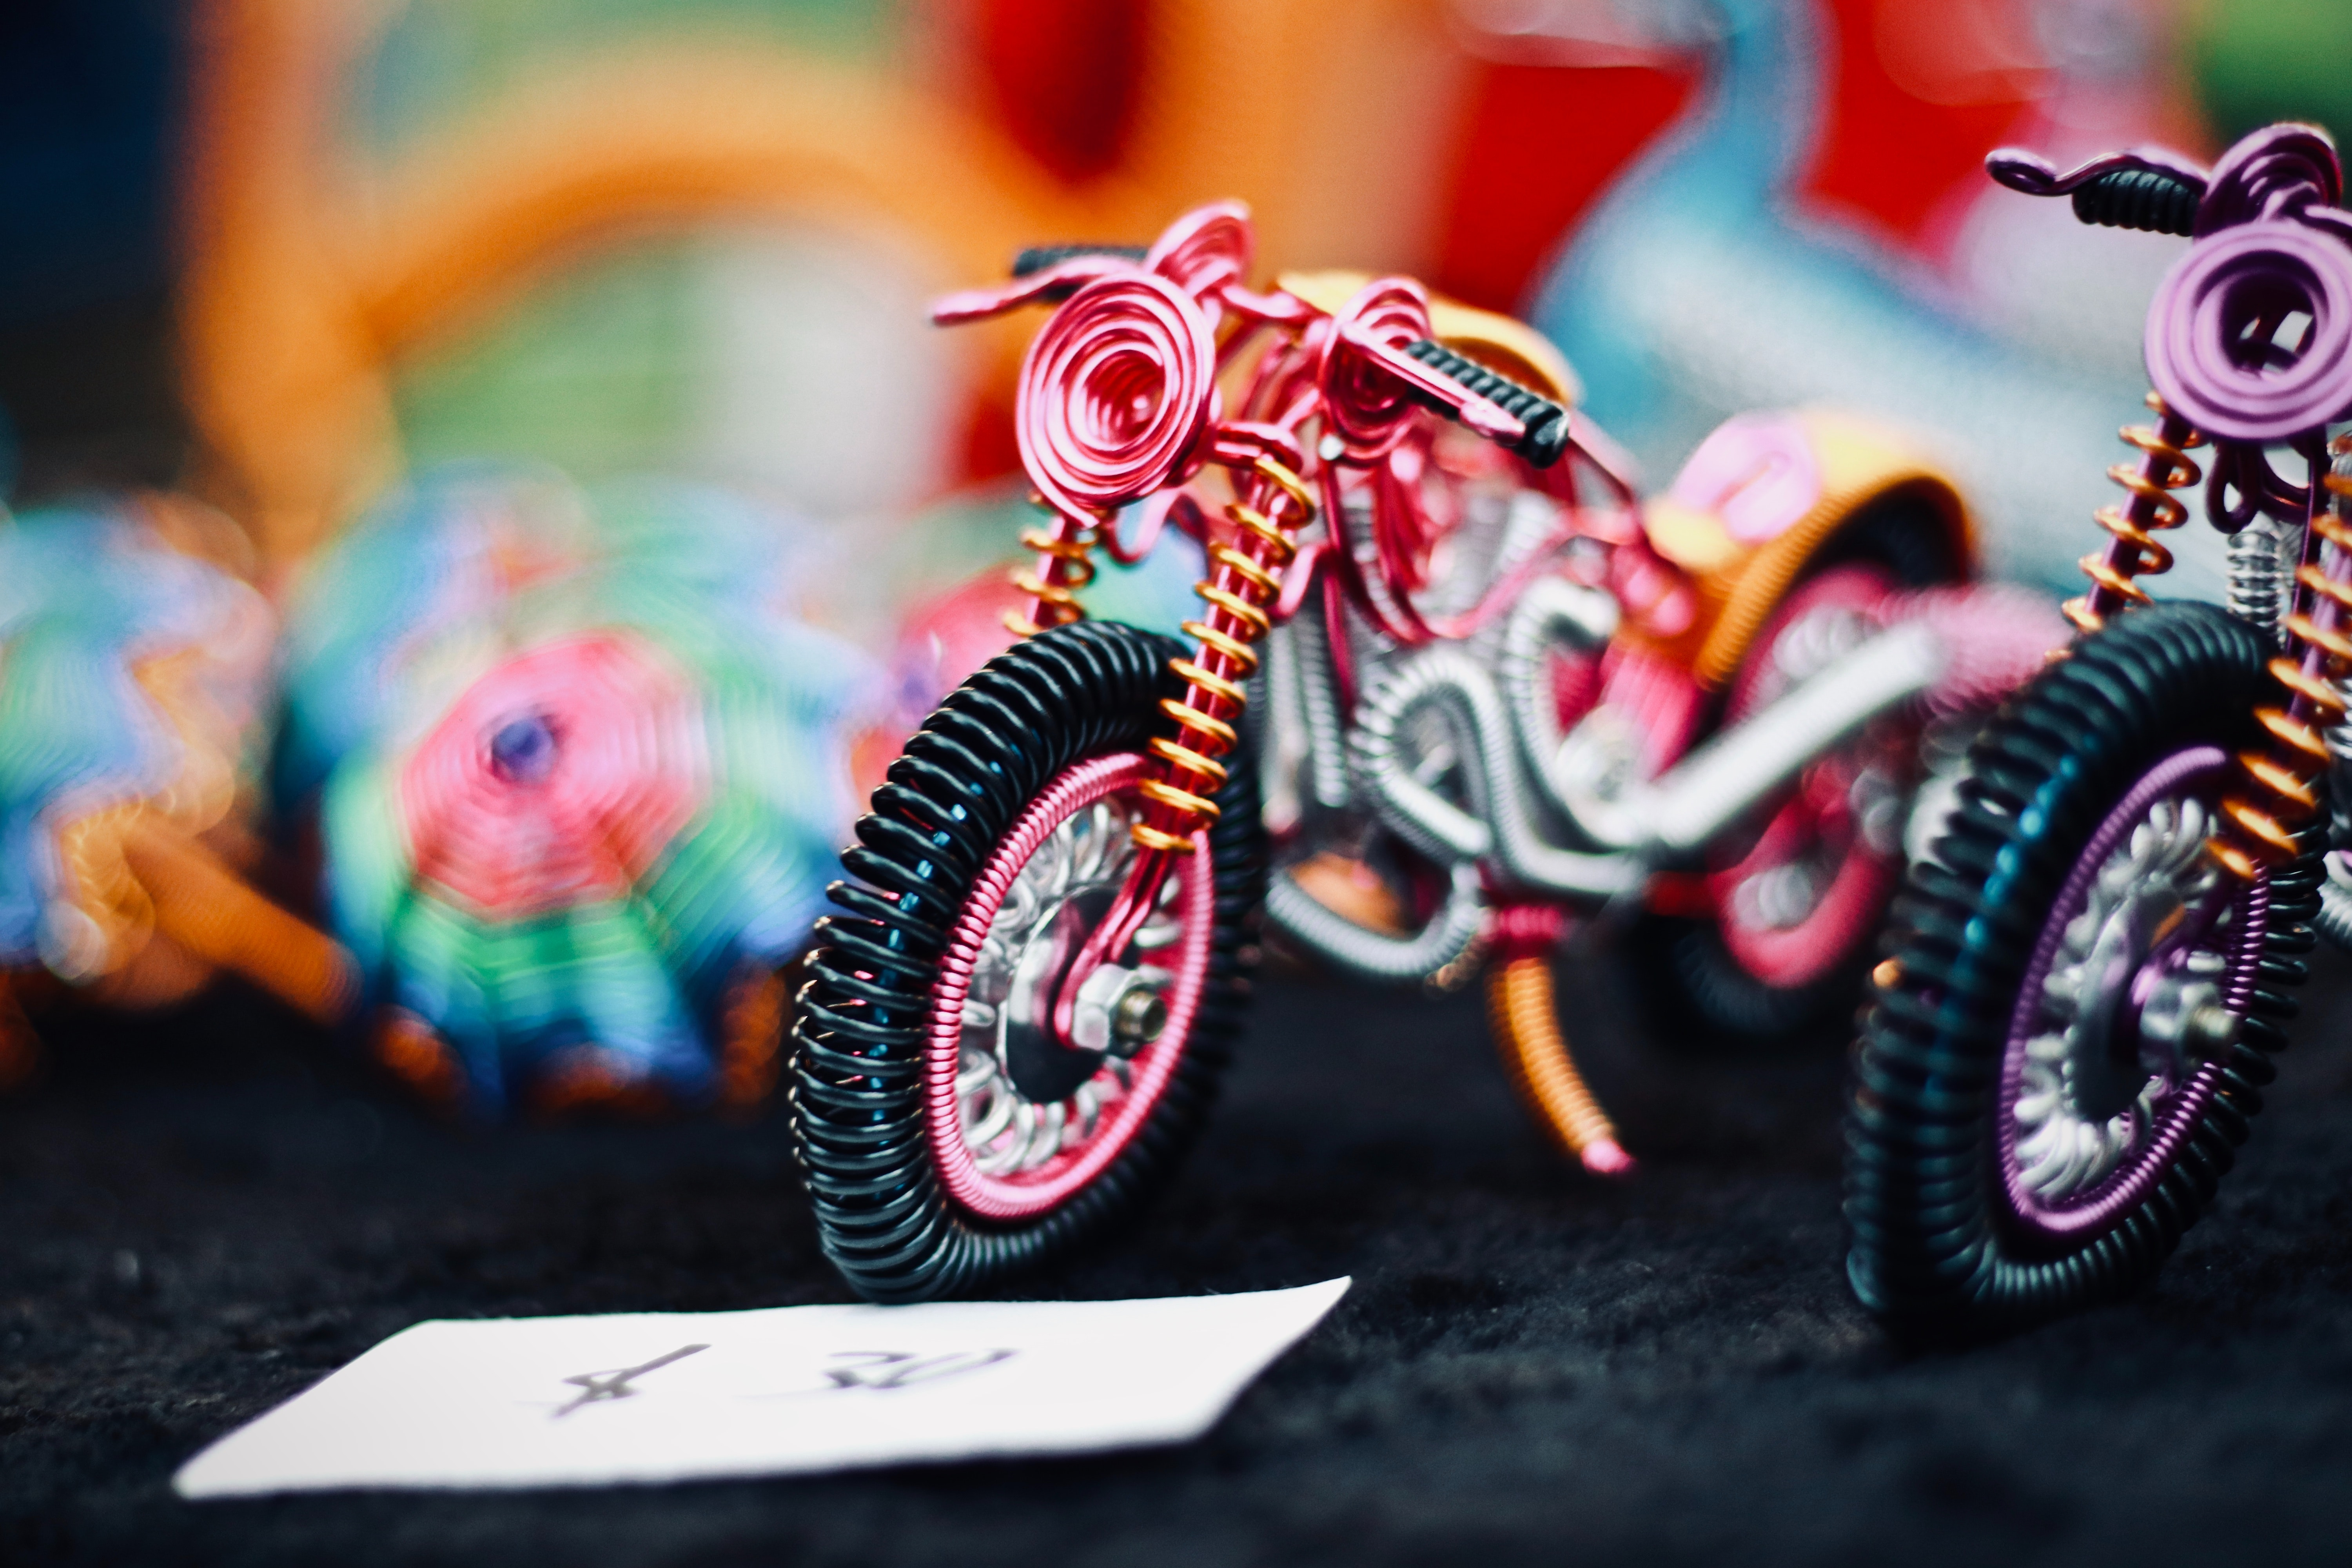 Motorcycle Clubs and Personal Branding Chantel Soumis